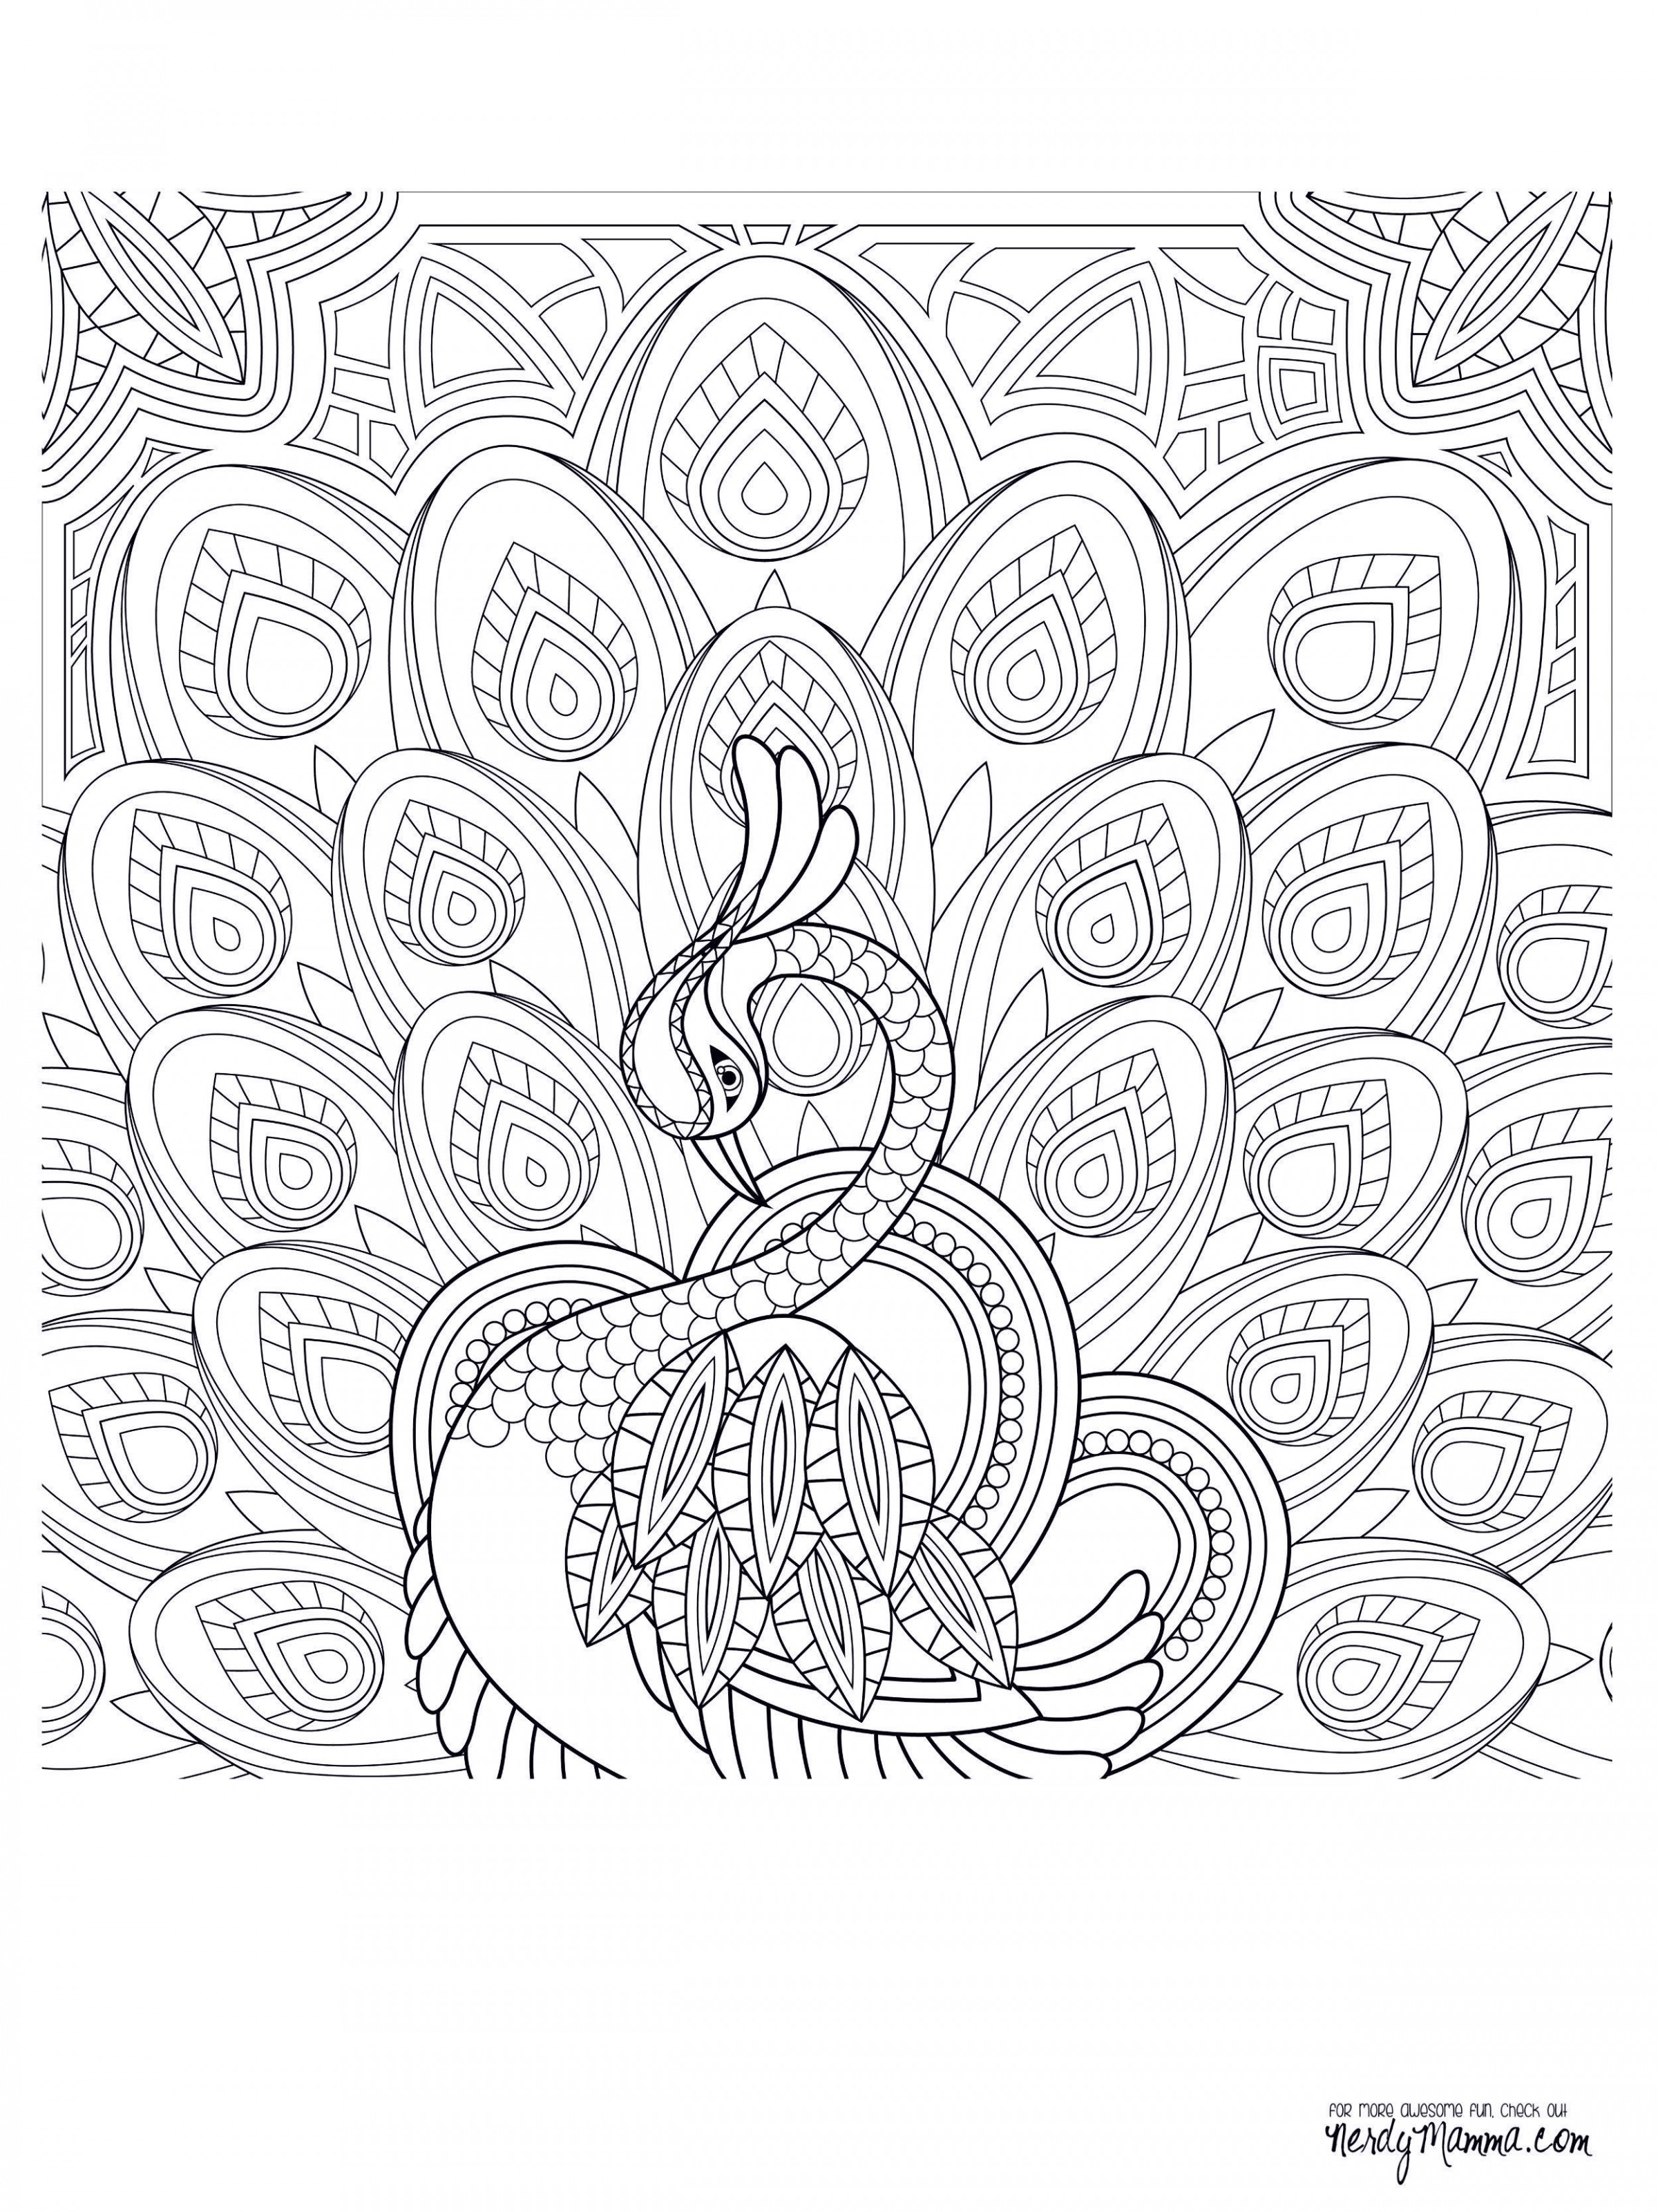 preschool halloween coloring pages Collection-Printable Halloween Coloring Pages for Kids Coloring themes Free Coloring Pages for Kids Coloring Printables 0d 13-g